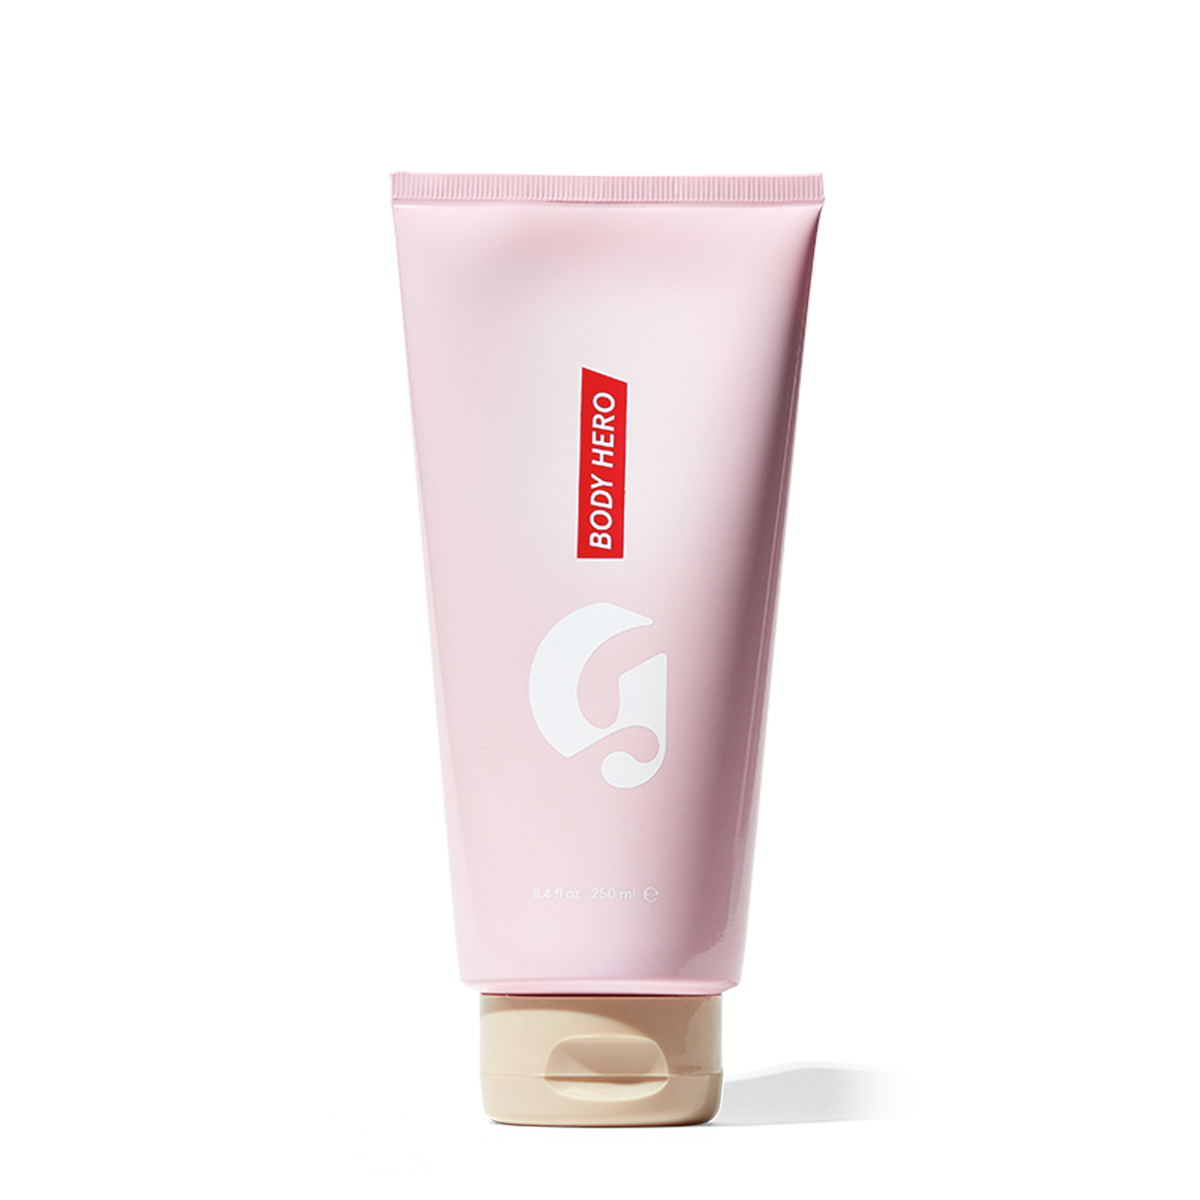 Body Hero Daily Perfecting Cream